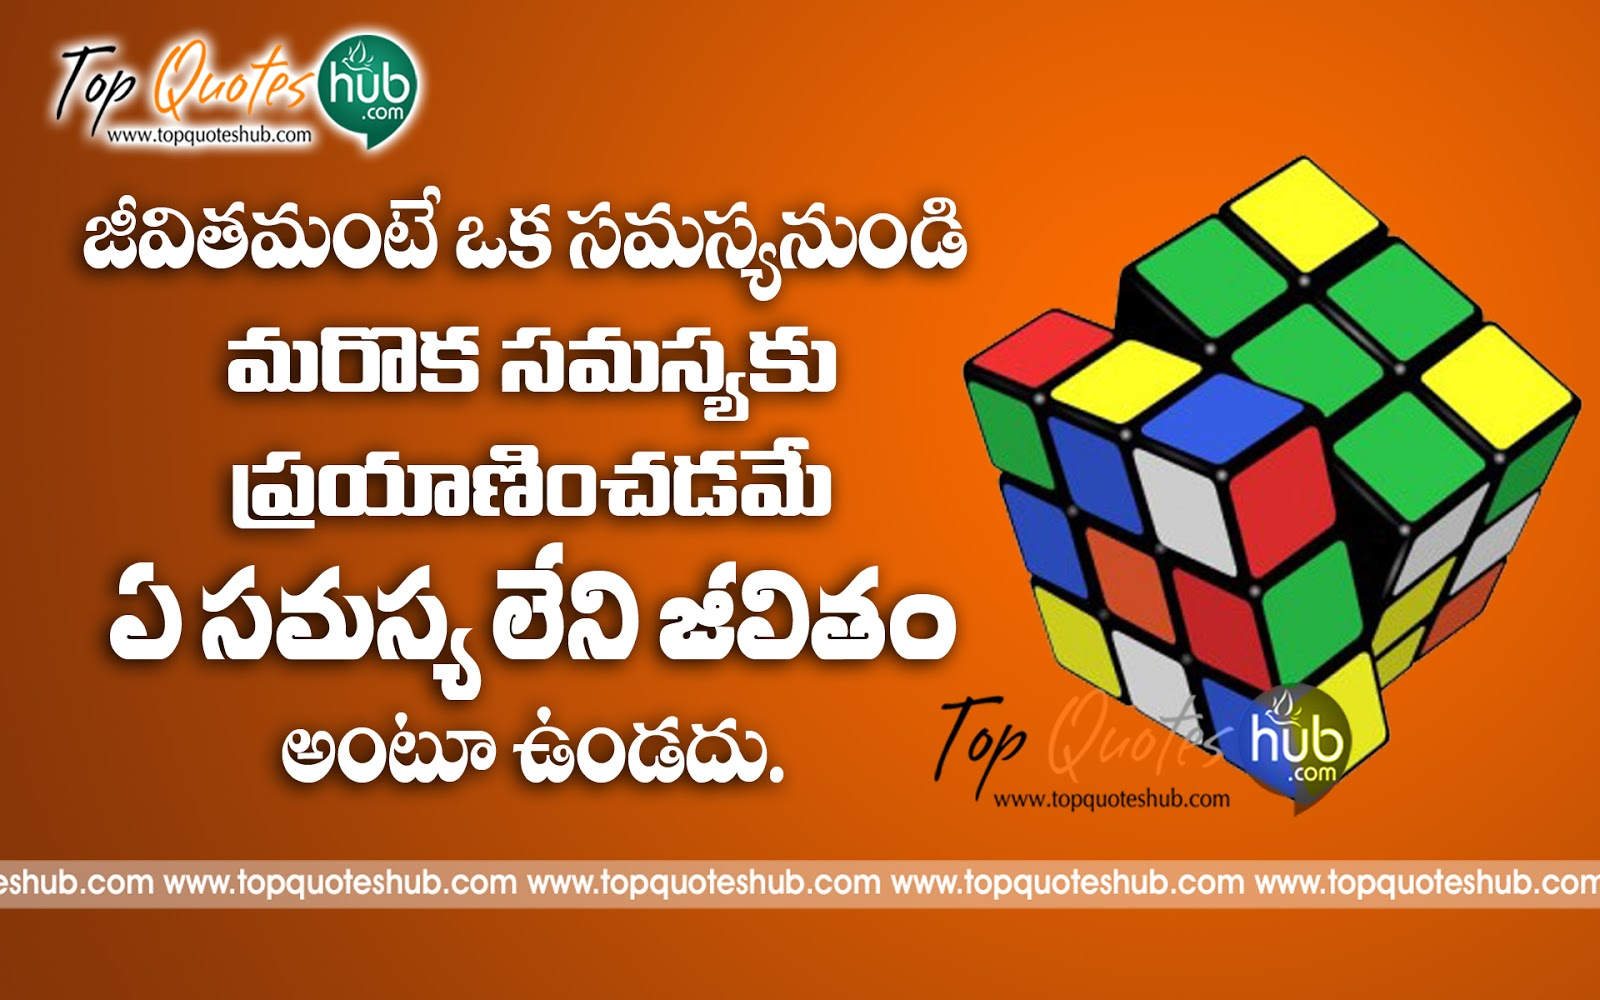 Motivational Telugu Life Greetings And Wishes Quotes Topquoteshub